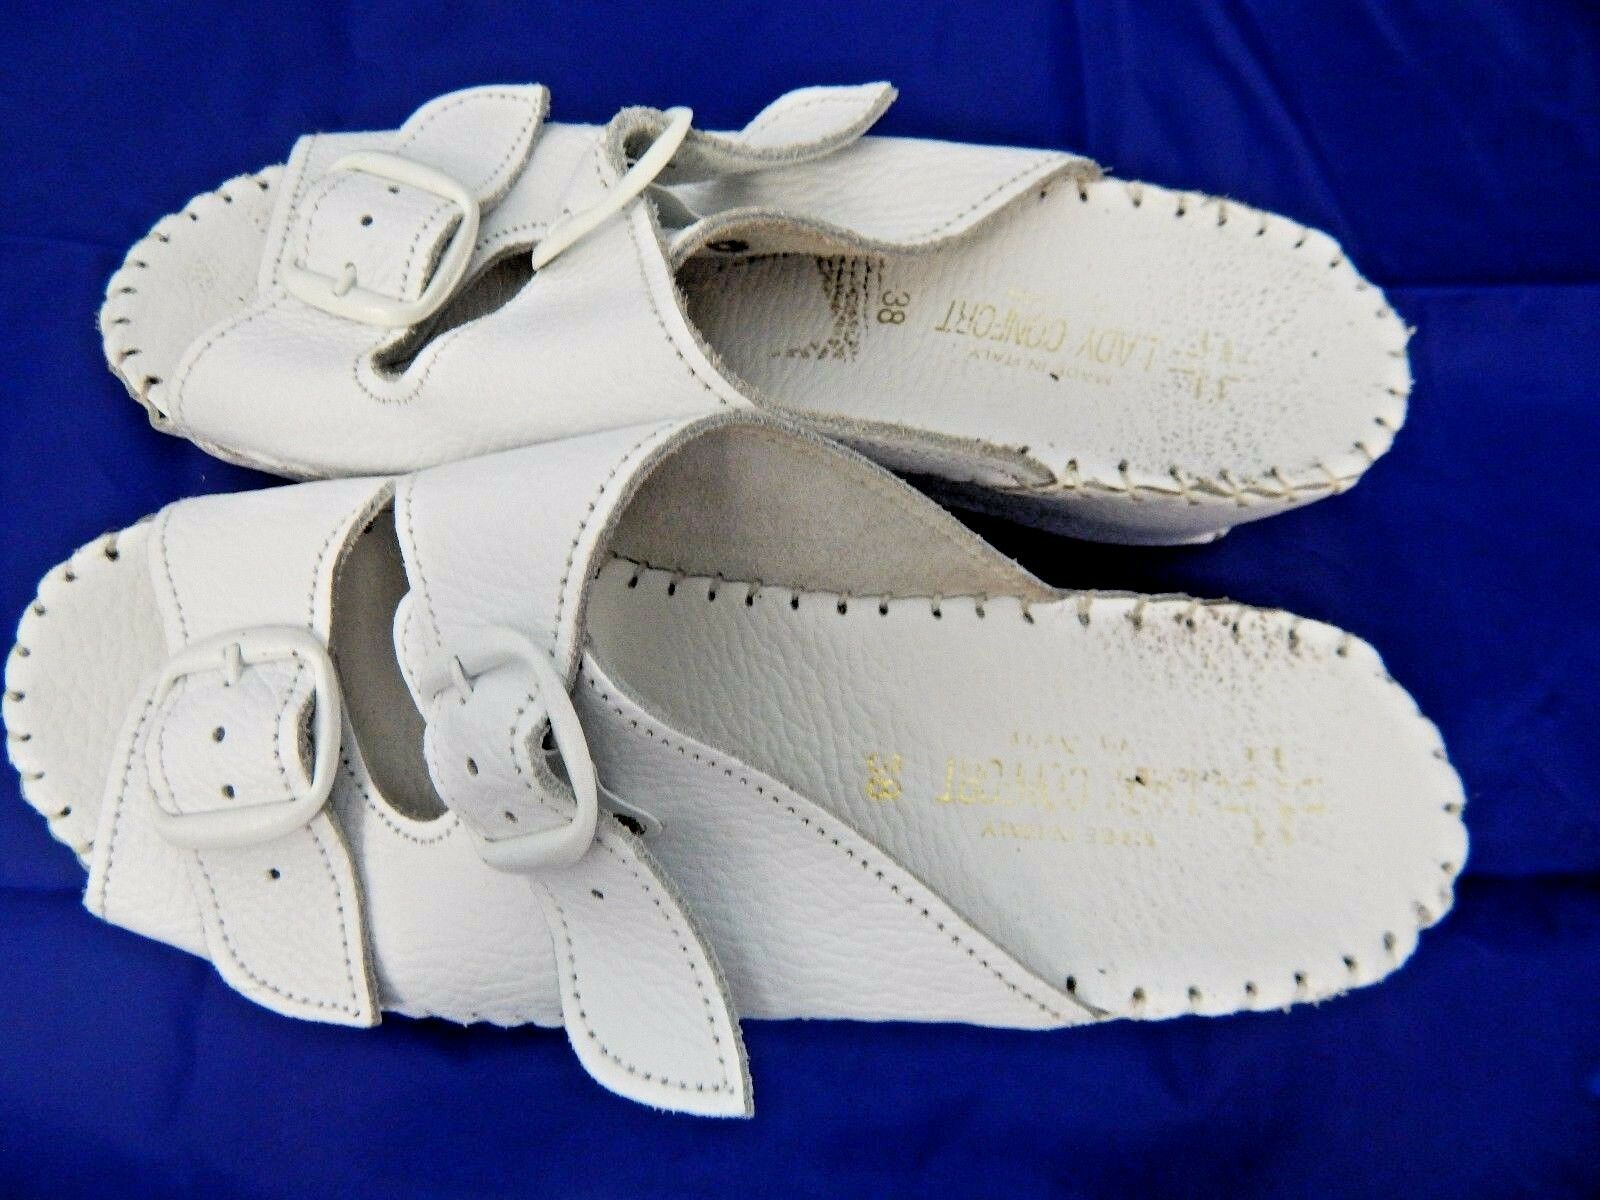 Lady Comfort Crafted White Leather Sandals Hand Crafted Comfort Made in Italy Sz 38/8B a94537